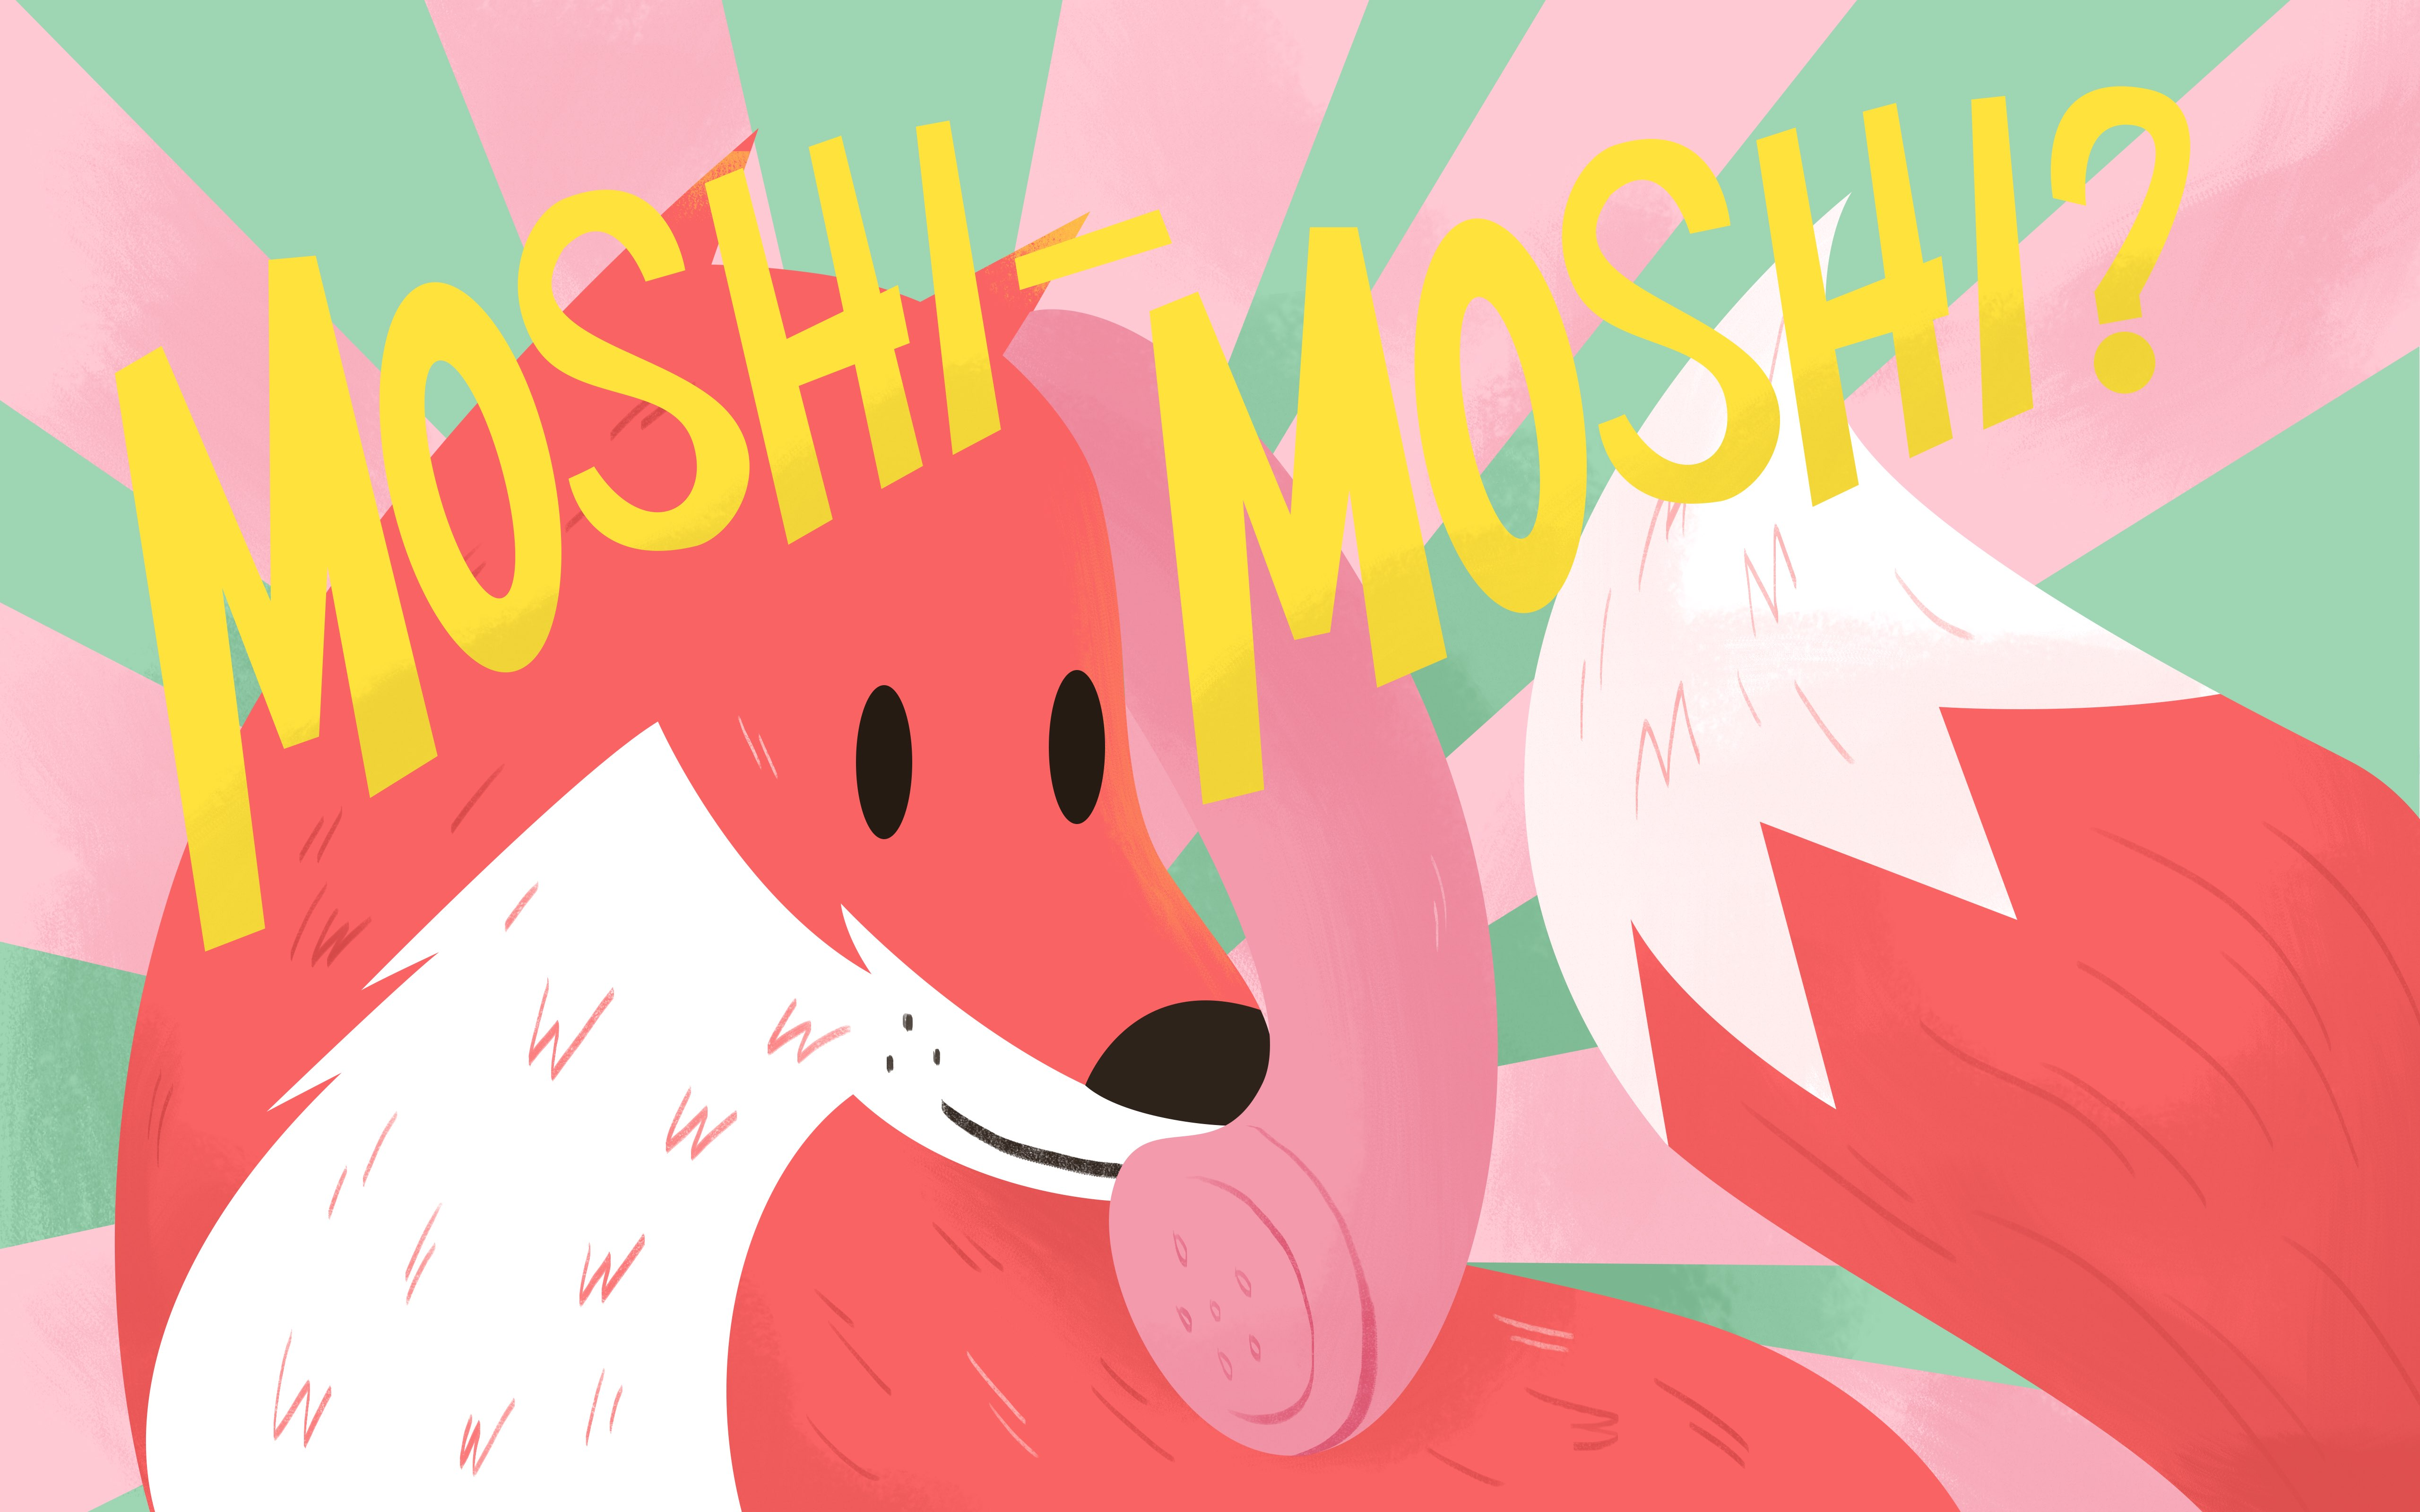 Moshi moshi what does it mean answering m4hsunfo